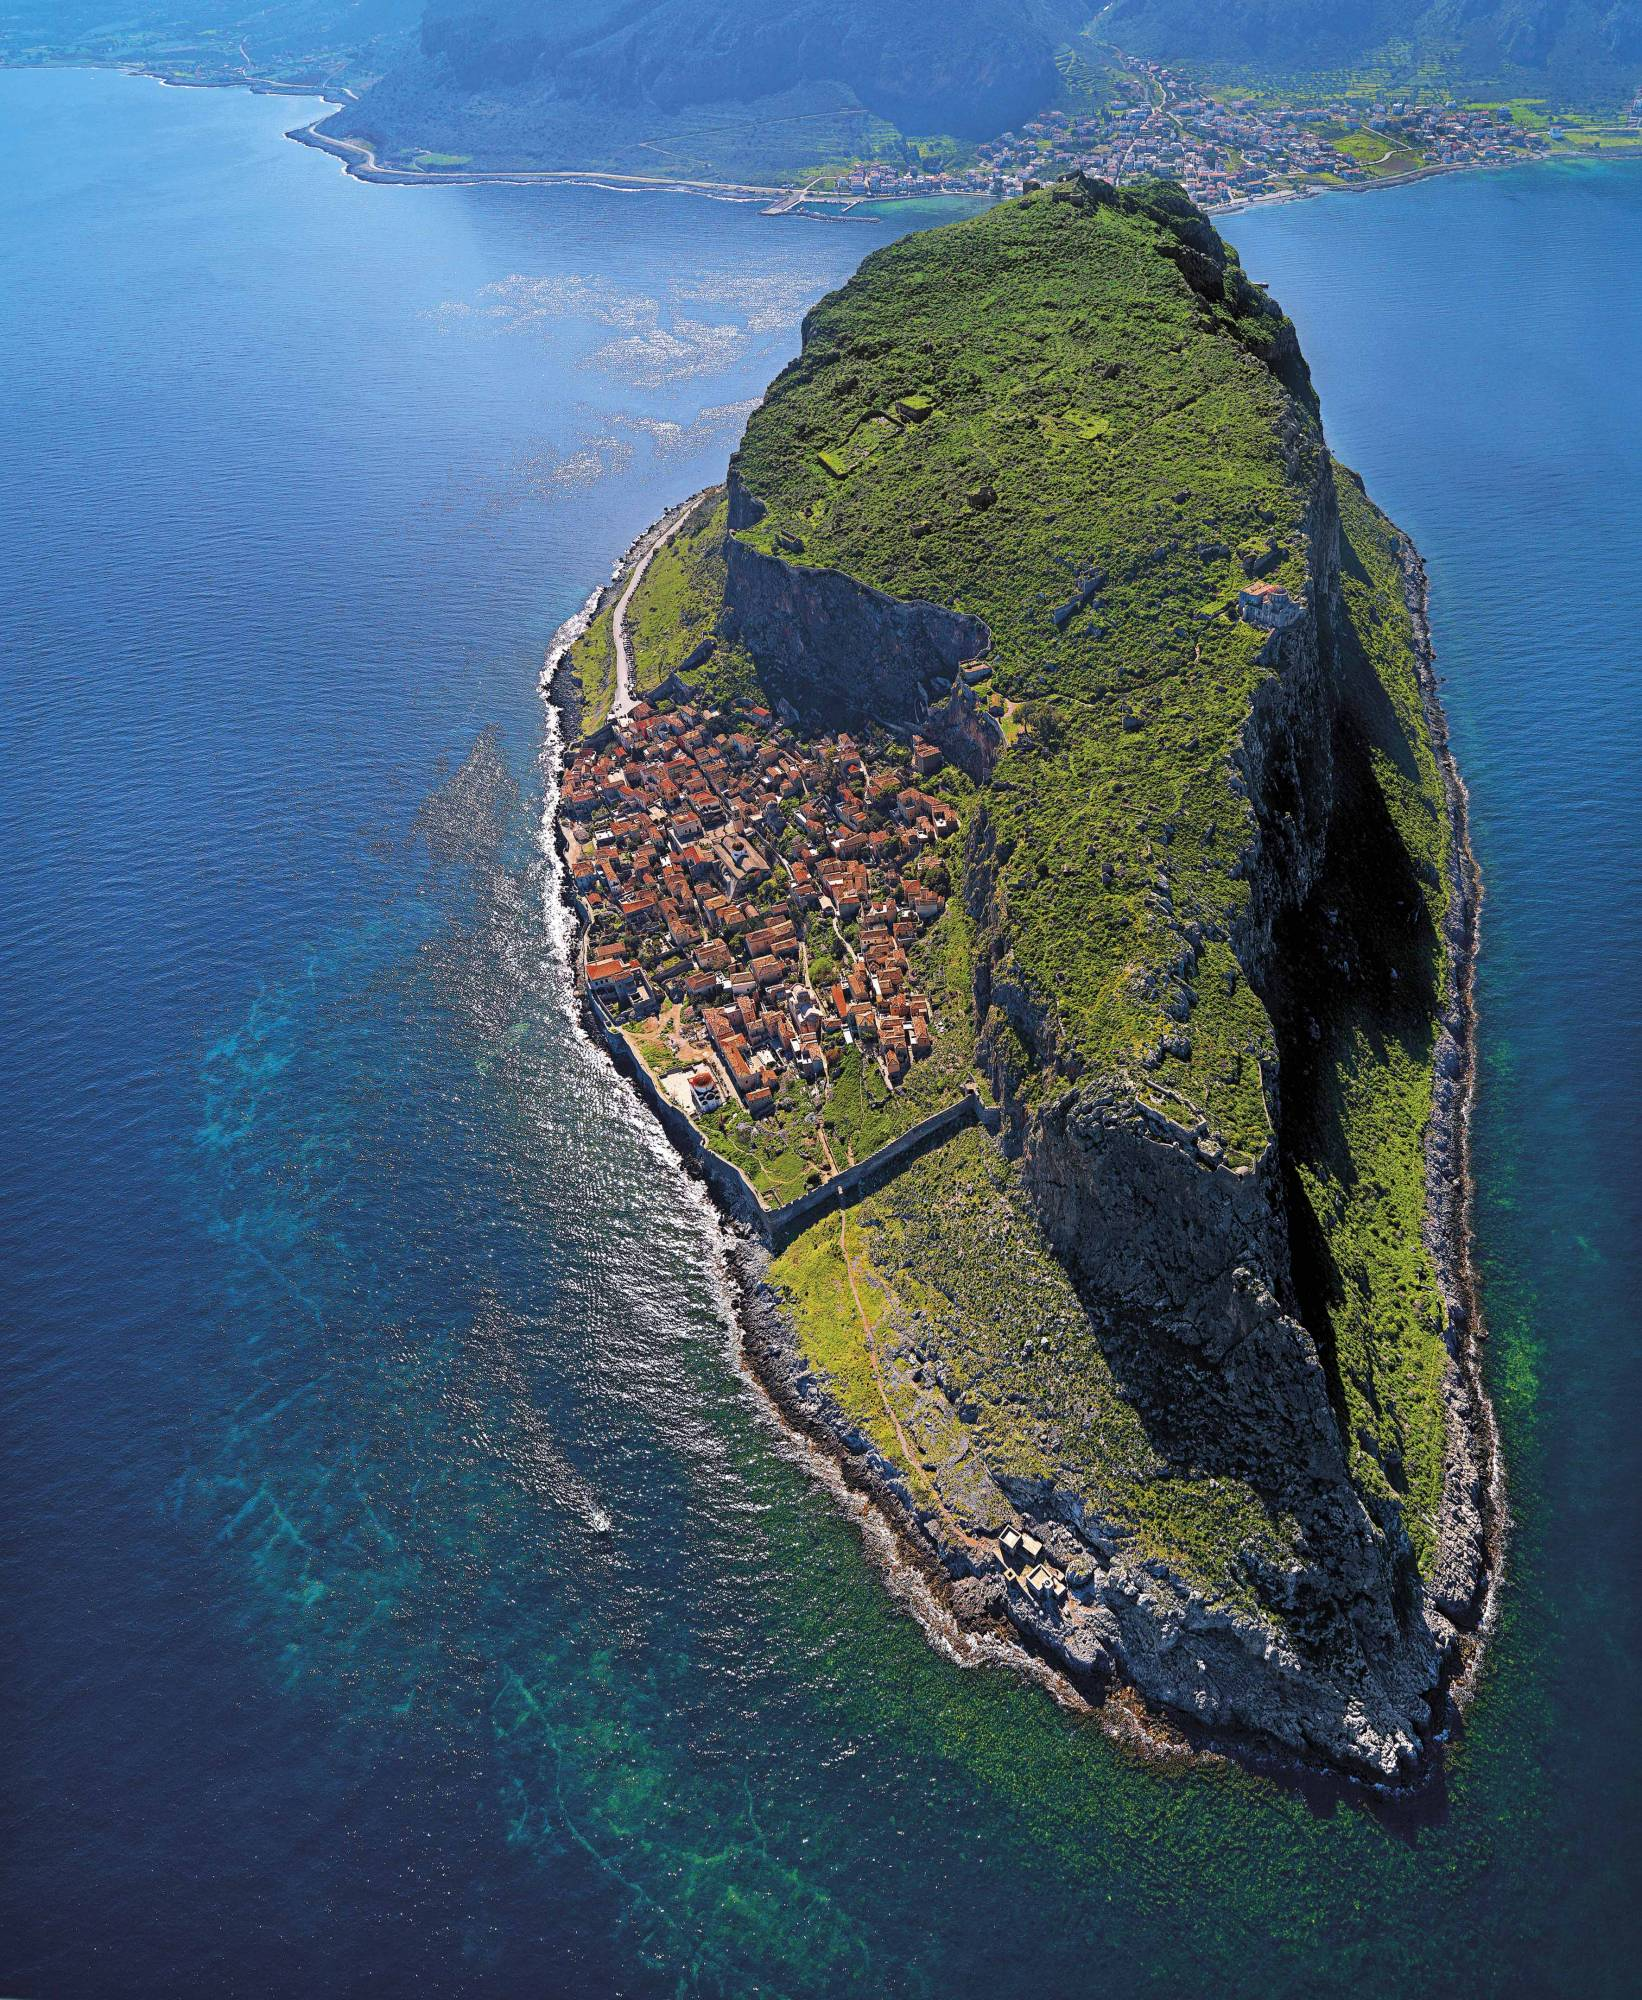 The Hidden Town of Monemvasia, Greece. http://t.co/XLHpvUtlzV